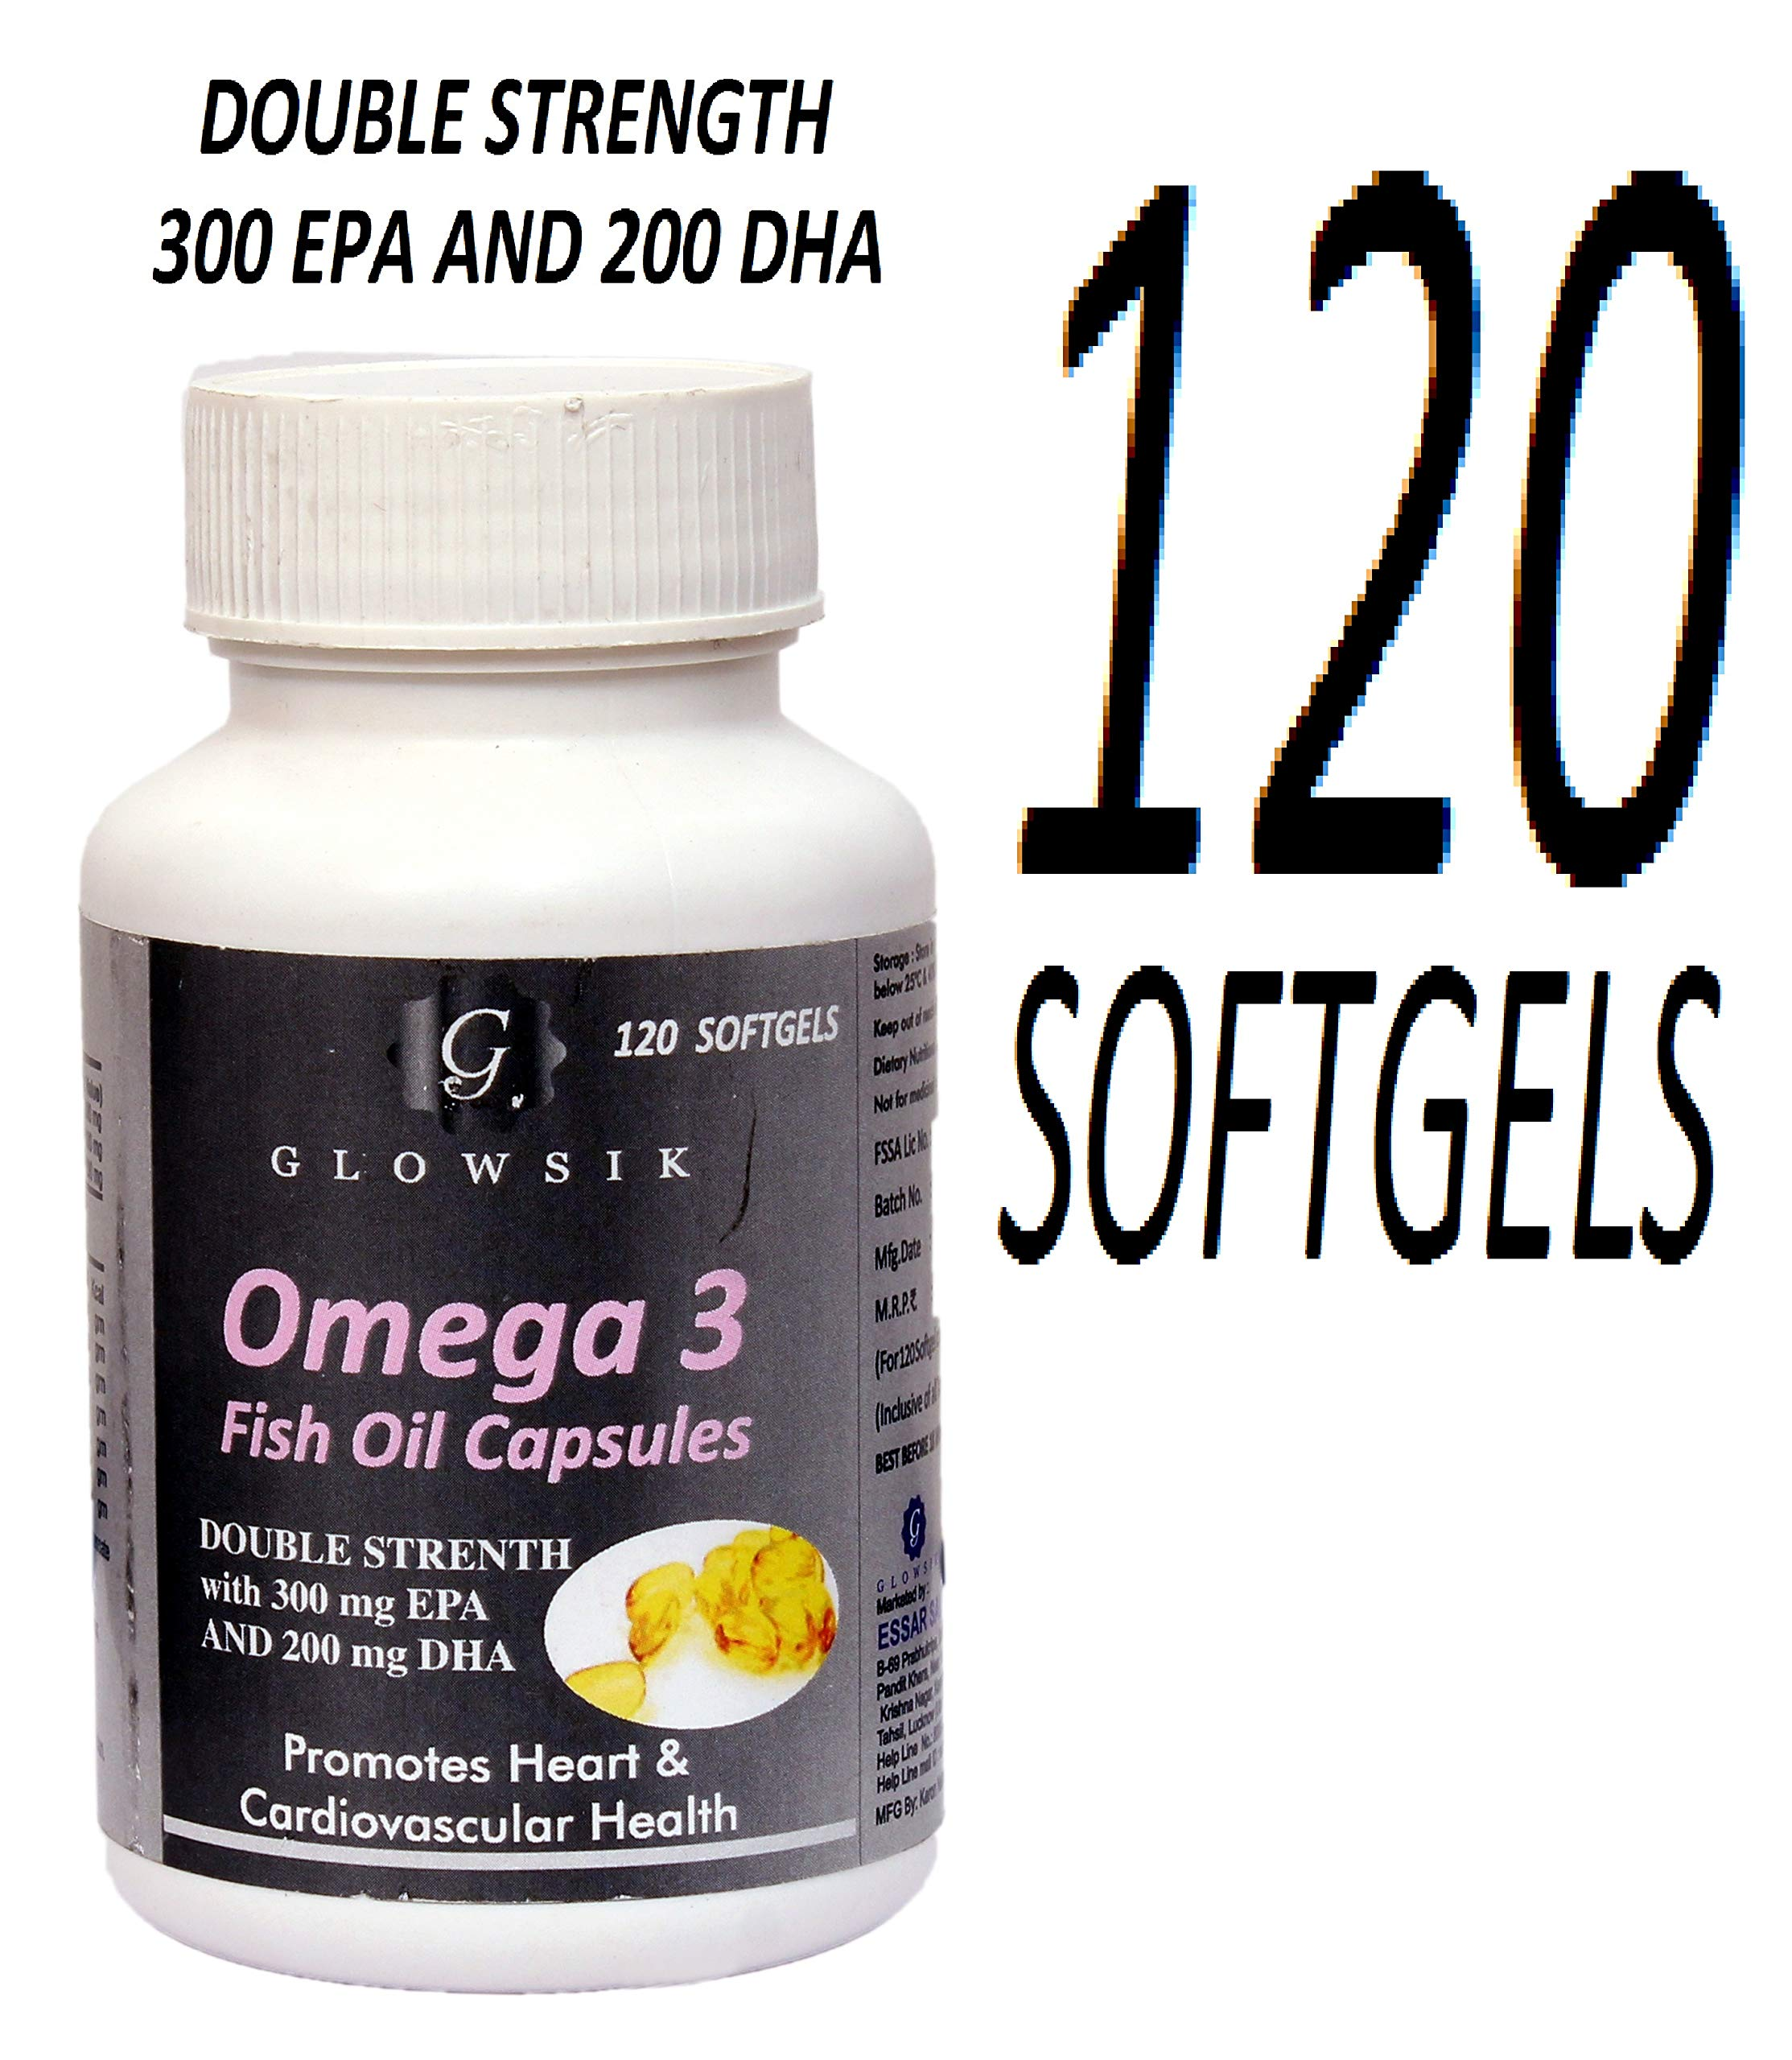 GLOWSIK FISH OIL OMEGA 3 DOUBLE STRENGTH CAPSULES 1000mg with 300 mg EPA AND 200mgDHA - 120 CAPSULES … (FISH OIL) product image